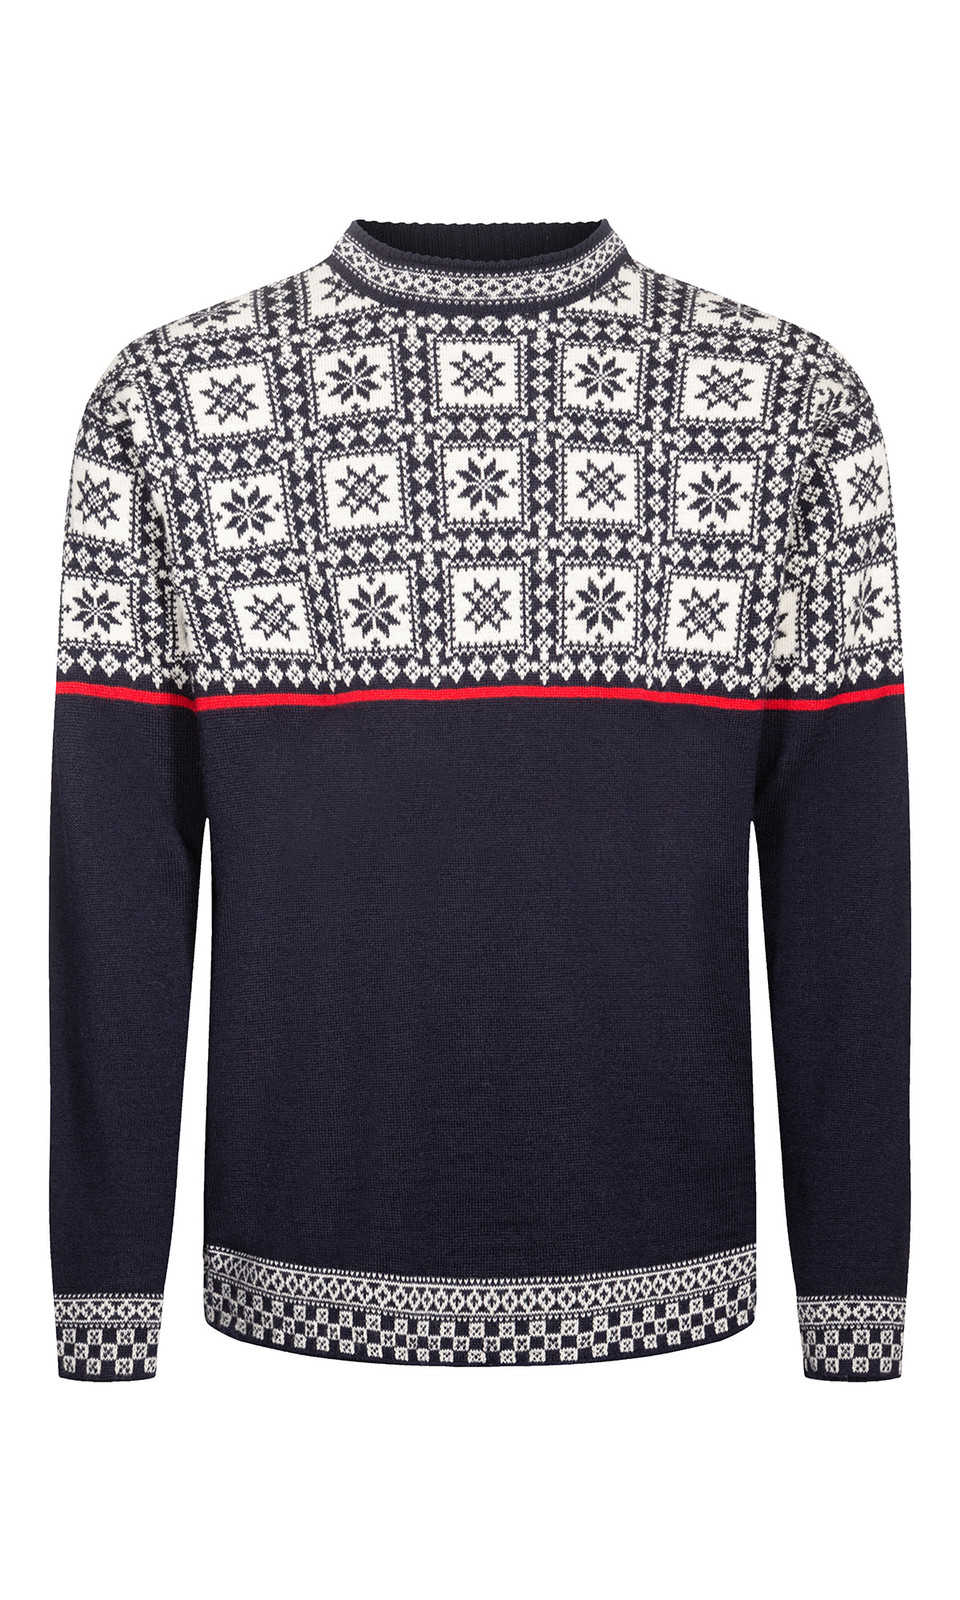 Dale of Norway Tyssøy Sweater, Mens- Navy/Off White/Raspberry, 94411-C (94411-F)